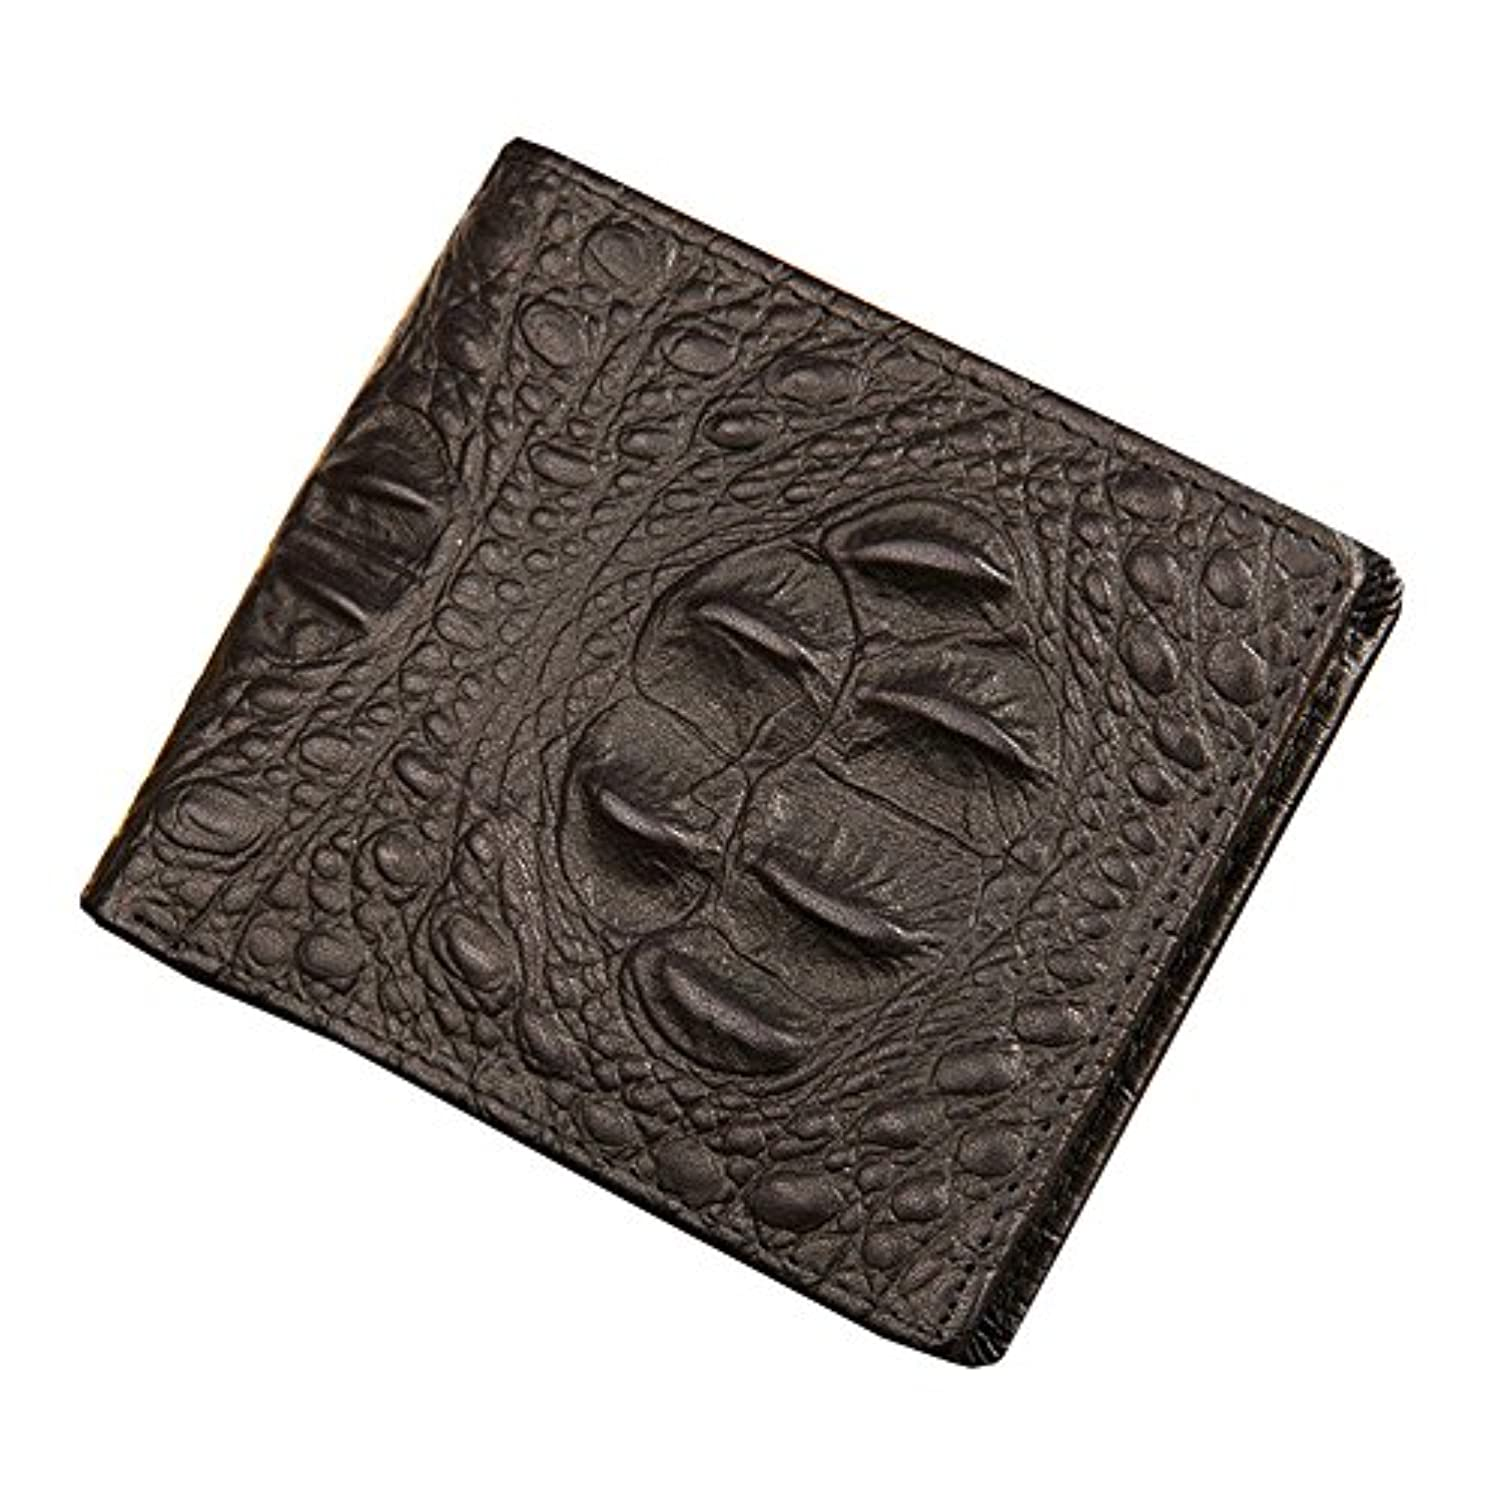 Linyuan 安定した品質 Men's Retro Leather Wallet 財布 With Multiple Card Slots 2018-3#